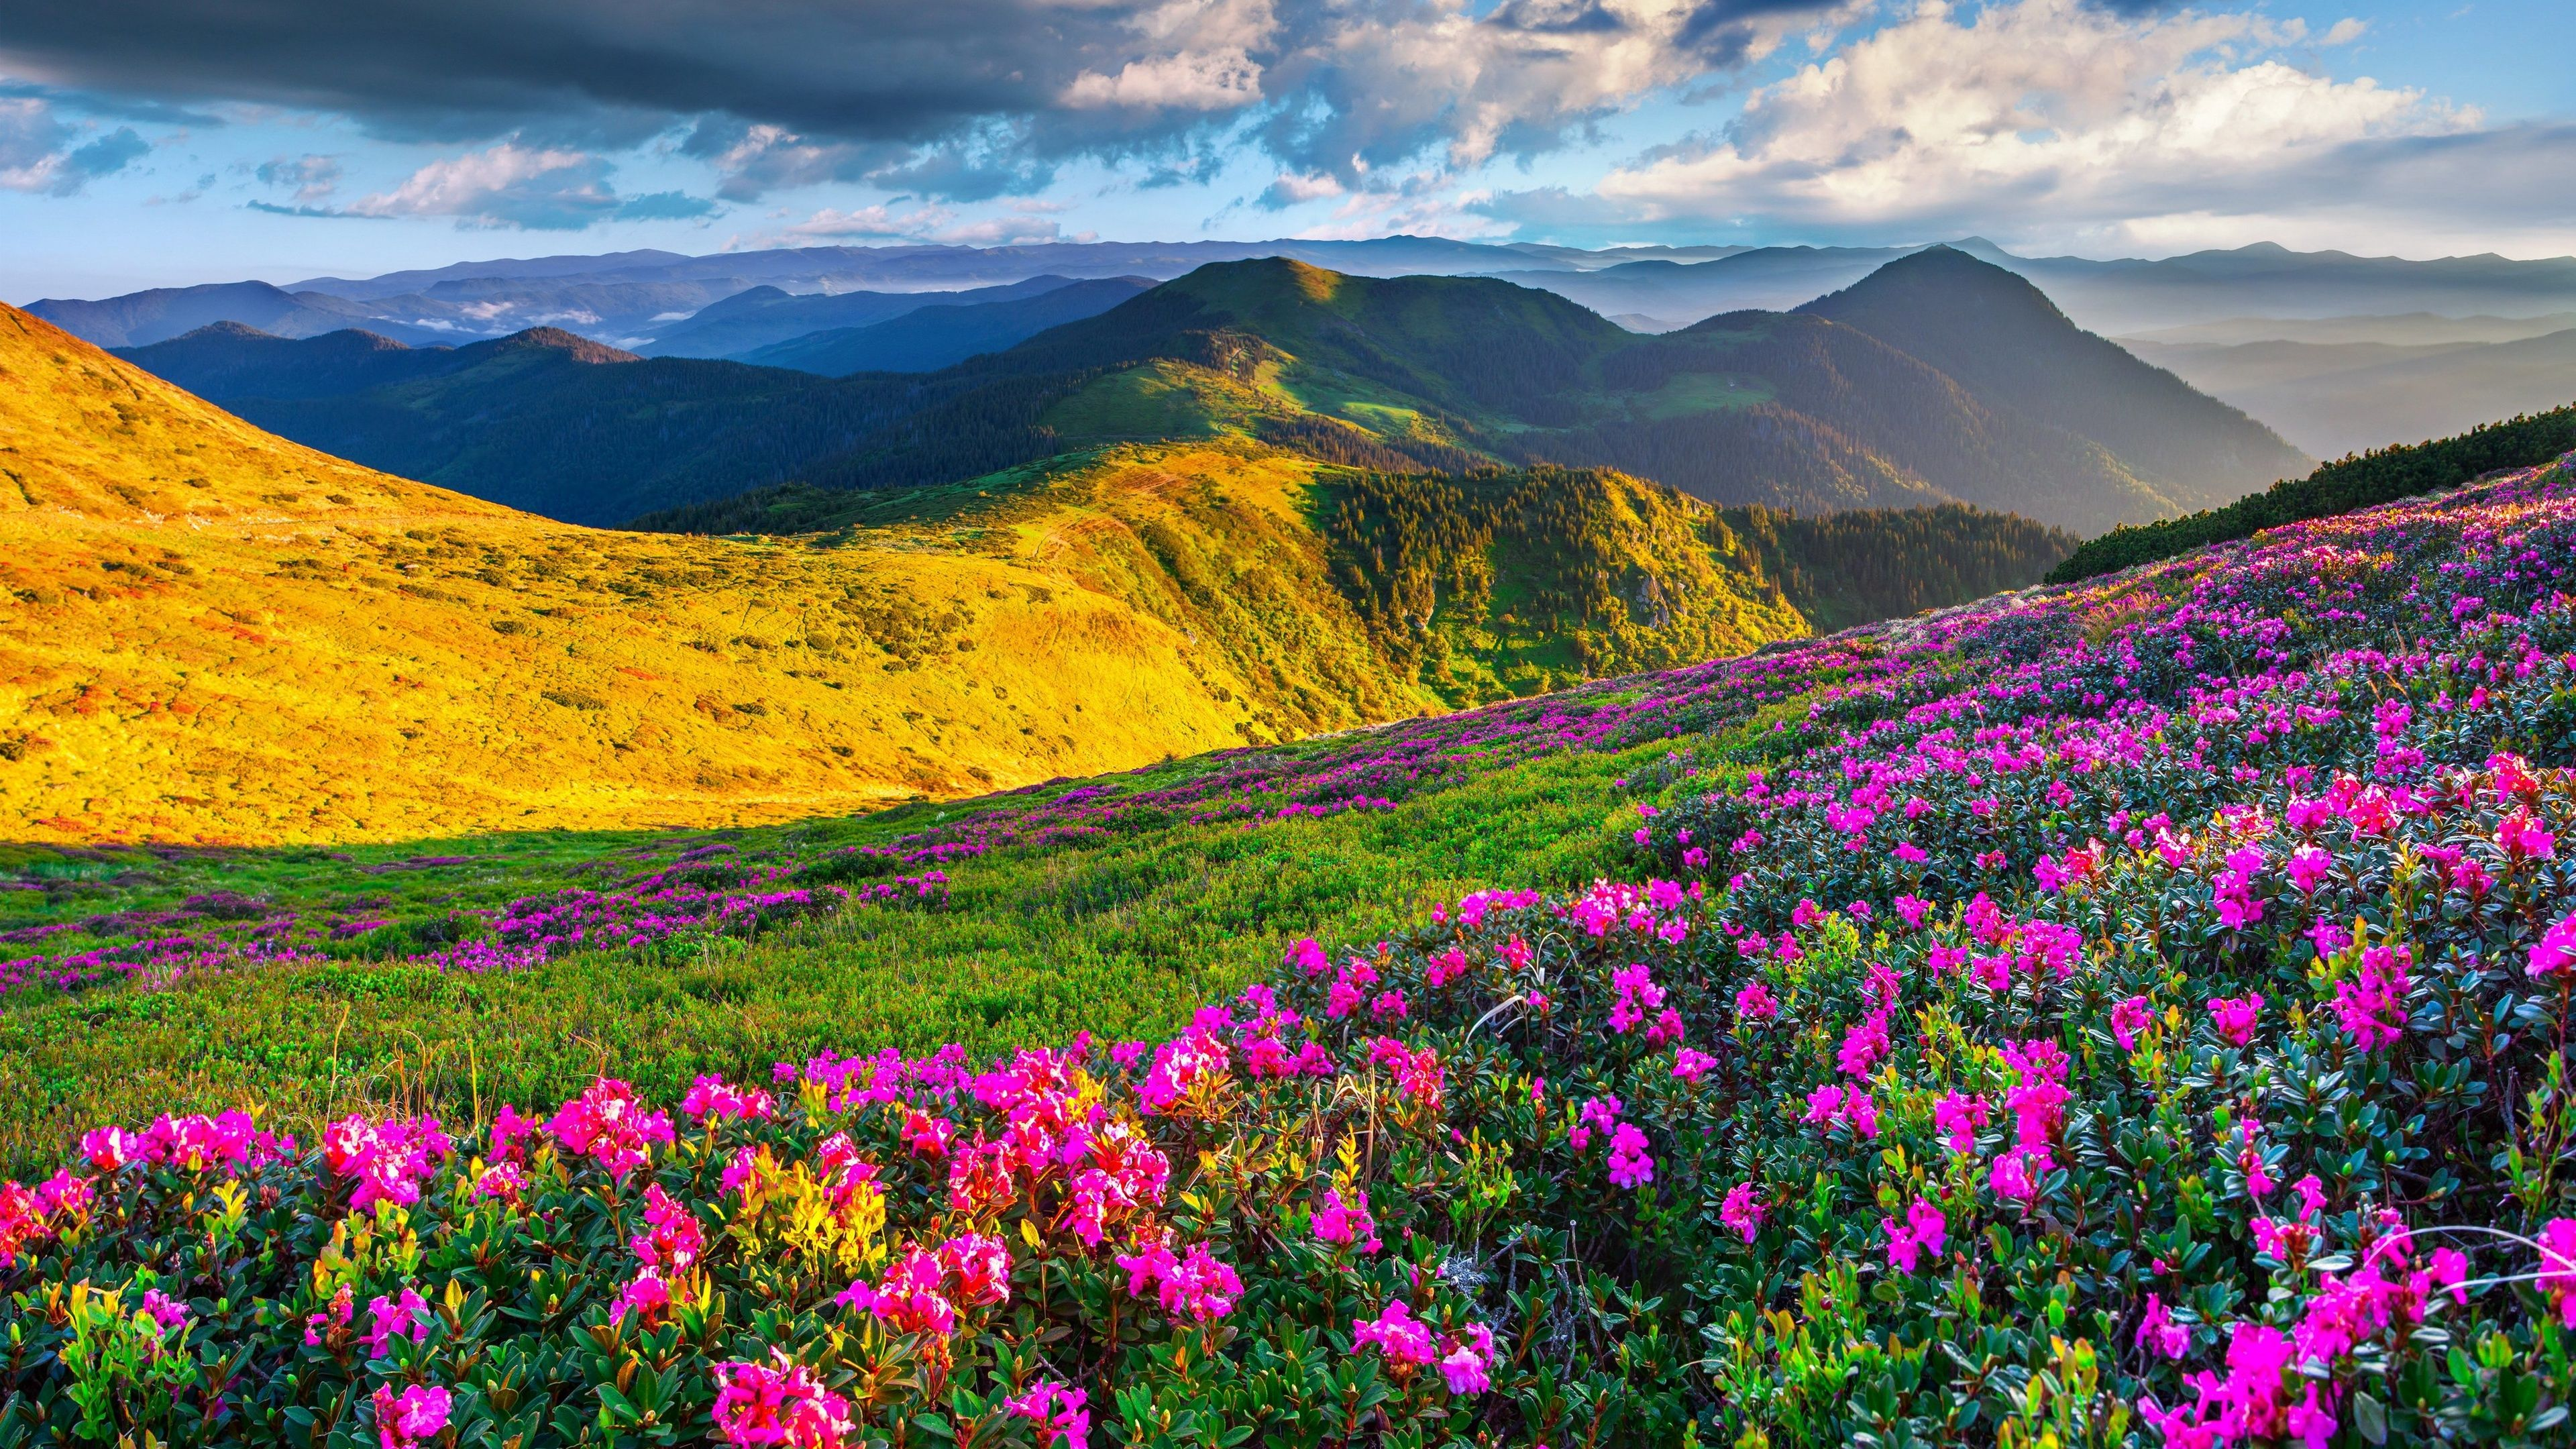 Hd 4k Wallpaper Flowers With Mountain Landscape Healthy Dog